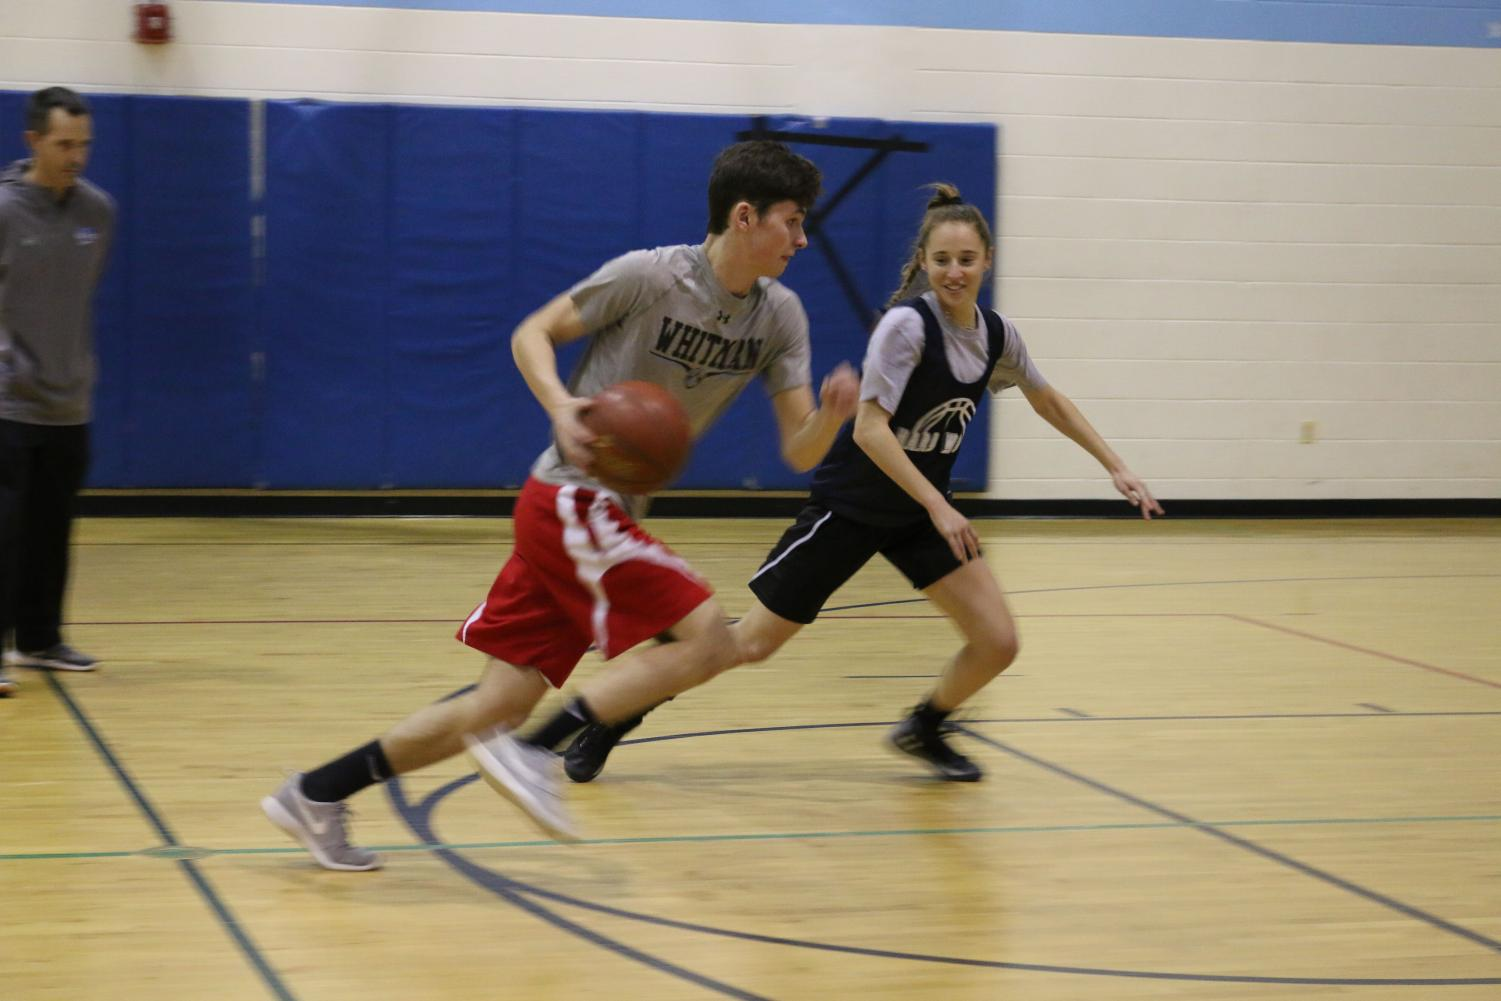 Senior Greg Shaffer dribbles the ball down the court as part of the boys practice squad. The girls team plays against the squad for a tougher physical challenge.